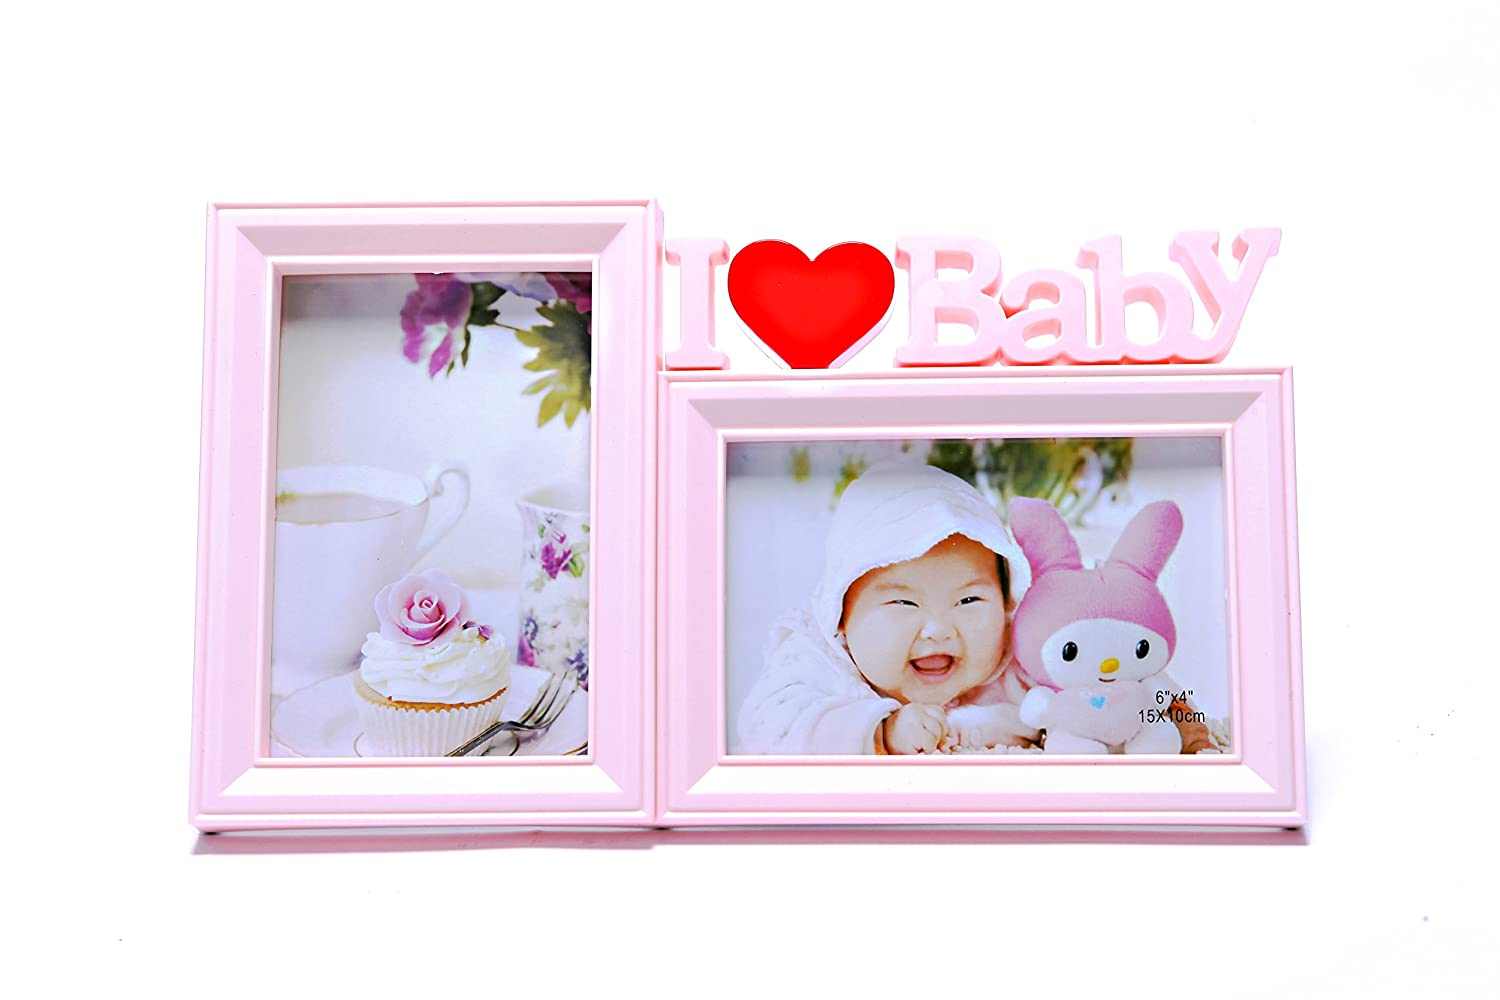 Sweet US Mall Premium Plastic Double Photo Frame,